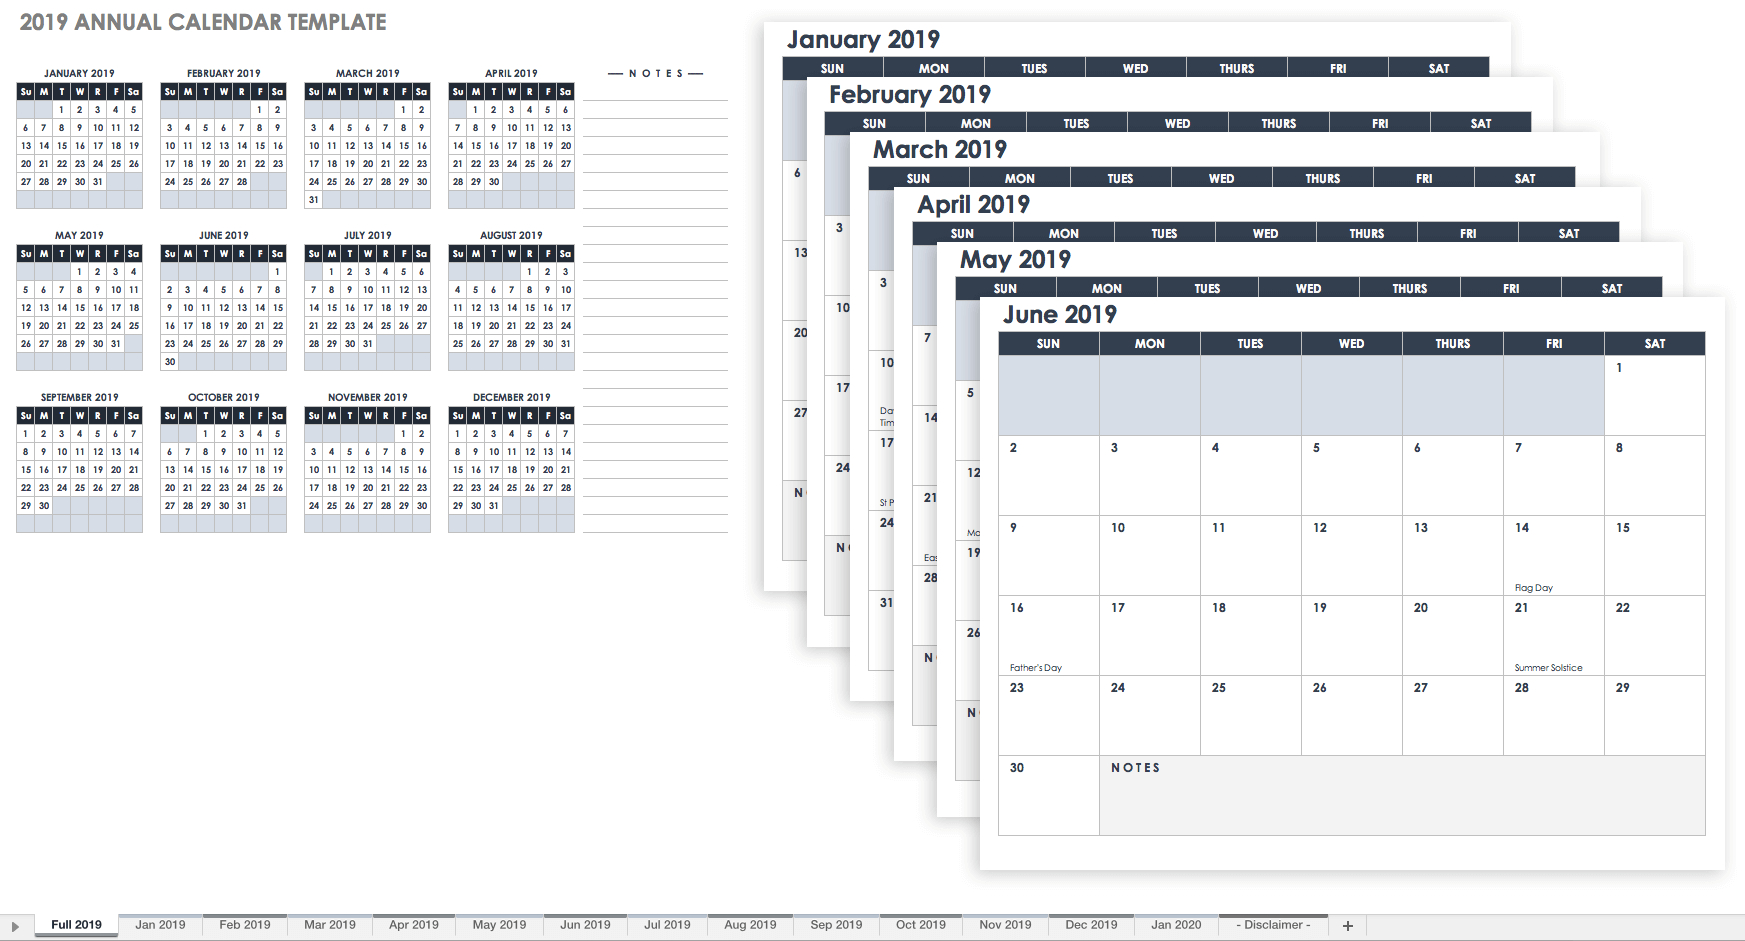 15 Free Monthly Calendar Templates | Smartsheet for Blank Calendar Month By Month